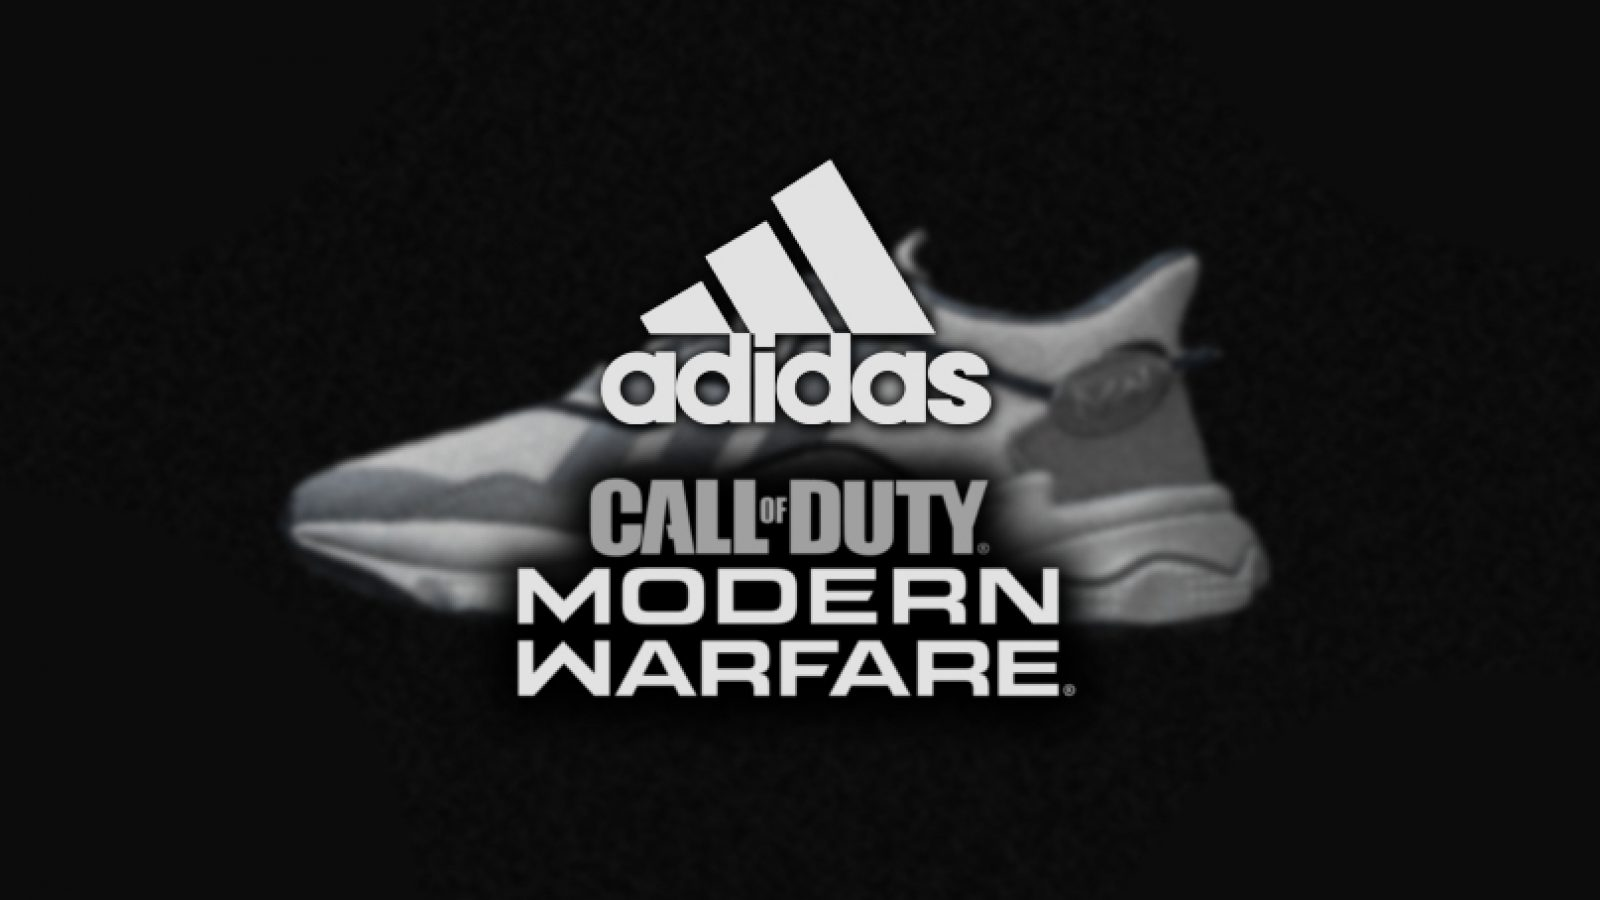 Call of Duty: Modern Warfare, arrivano le sneakers dedicate al franchise thumbnail